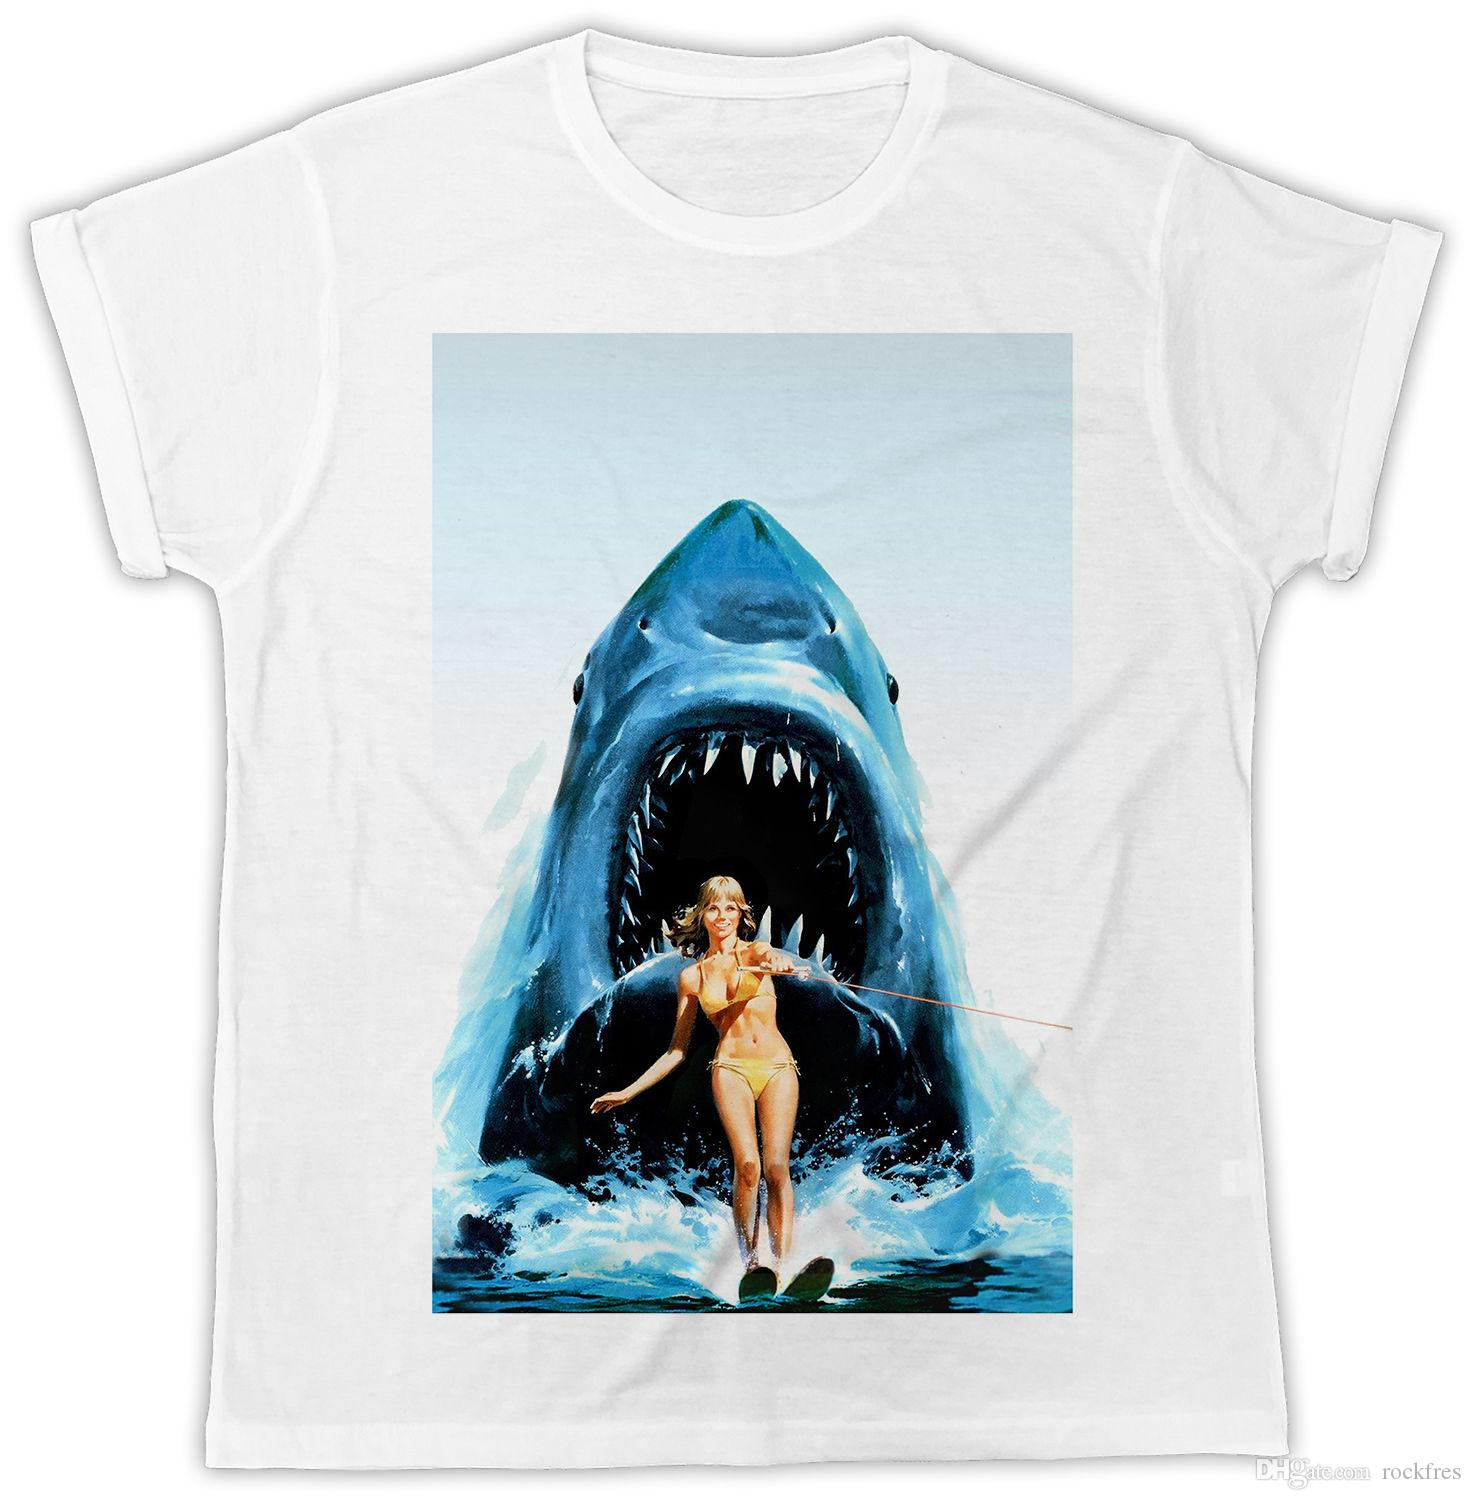 2849a9f3c1 SHARK SURF GIRL JAWS IDEAL GIFT BIRTHDAY PRESENT MENS UNISEX FUNNY COOL  TSHIRT T Shirts Shopping Really Funny T Shirts From Rockfres, $10.19|  DHgate.Com